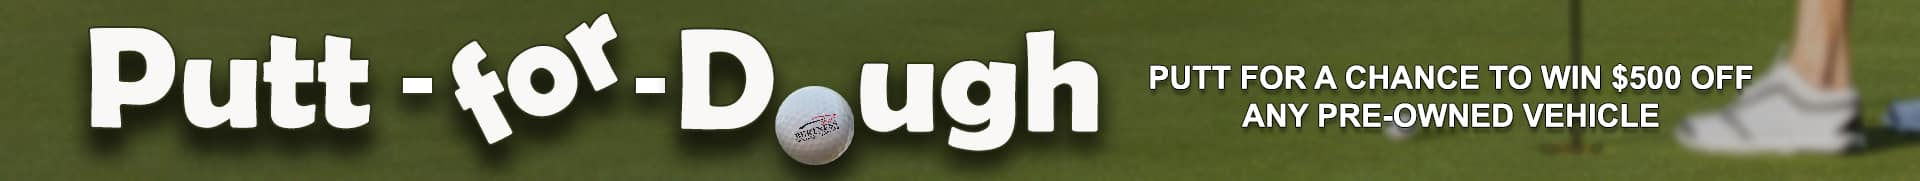 Putt_for_dough_Banner